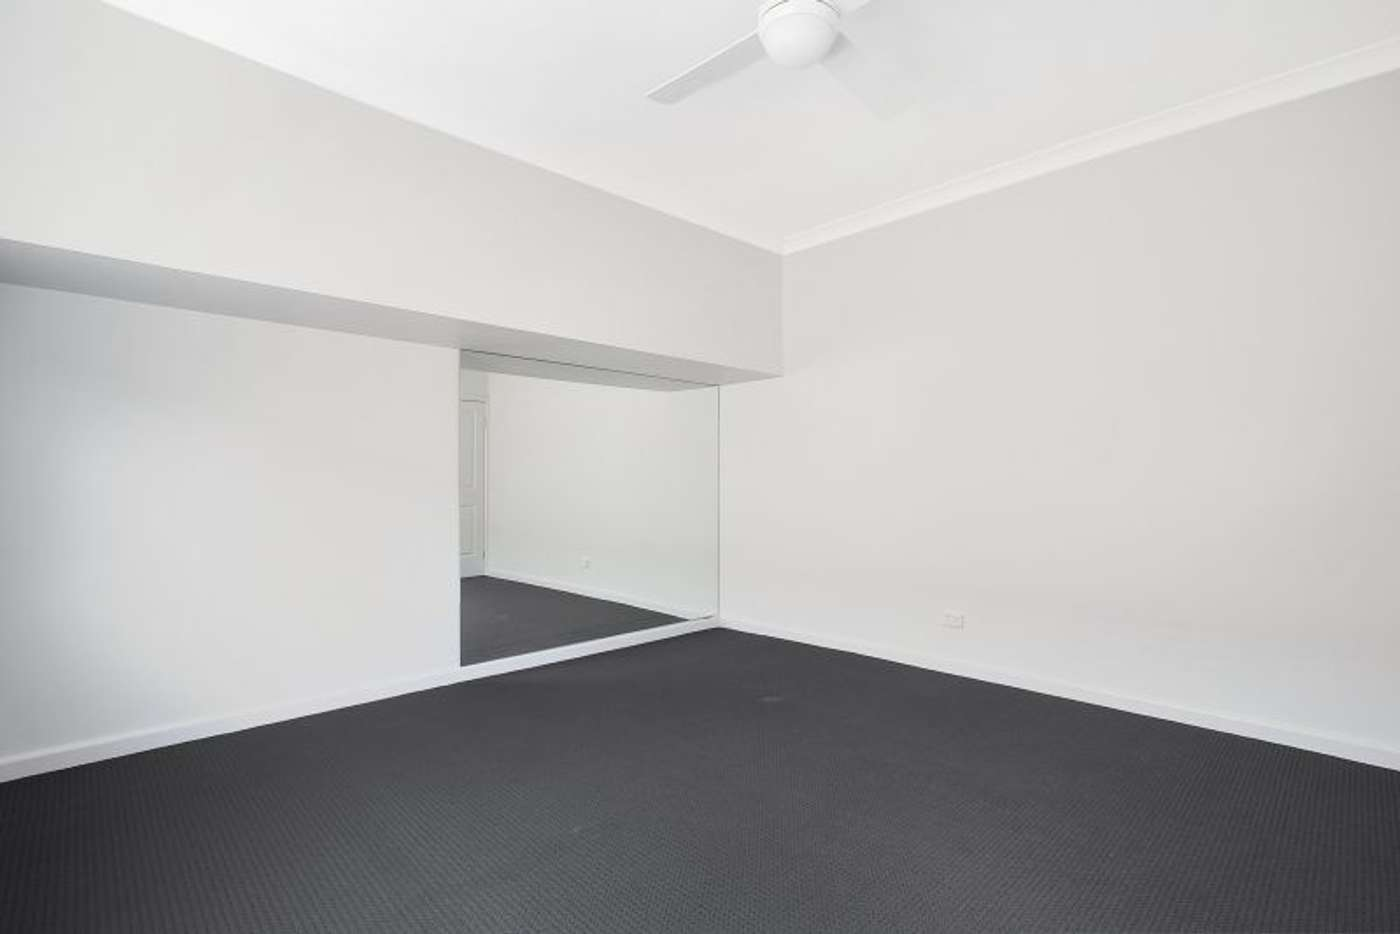 Sixth view of Homely house listing, 401 Eden Street, Lavington NSW 2641